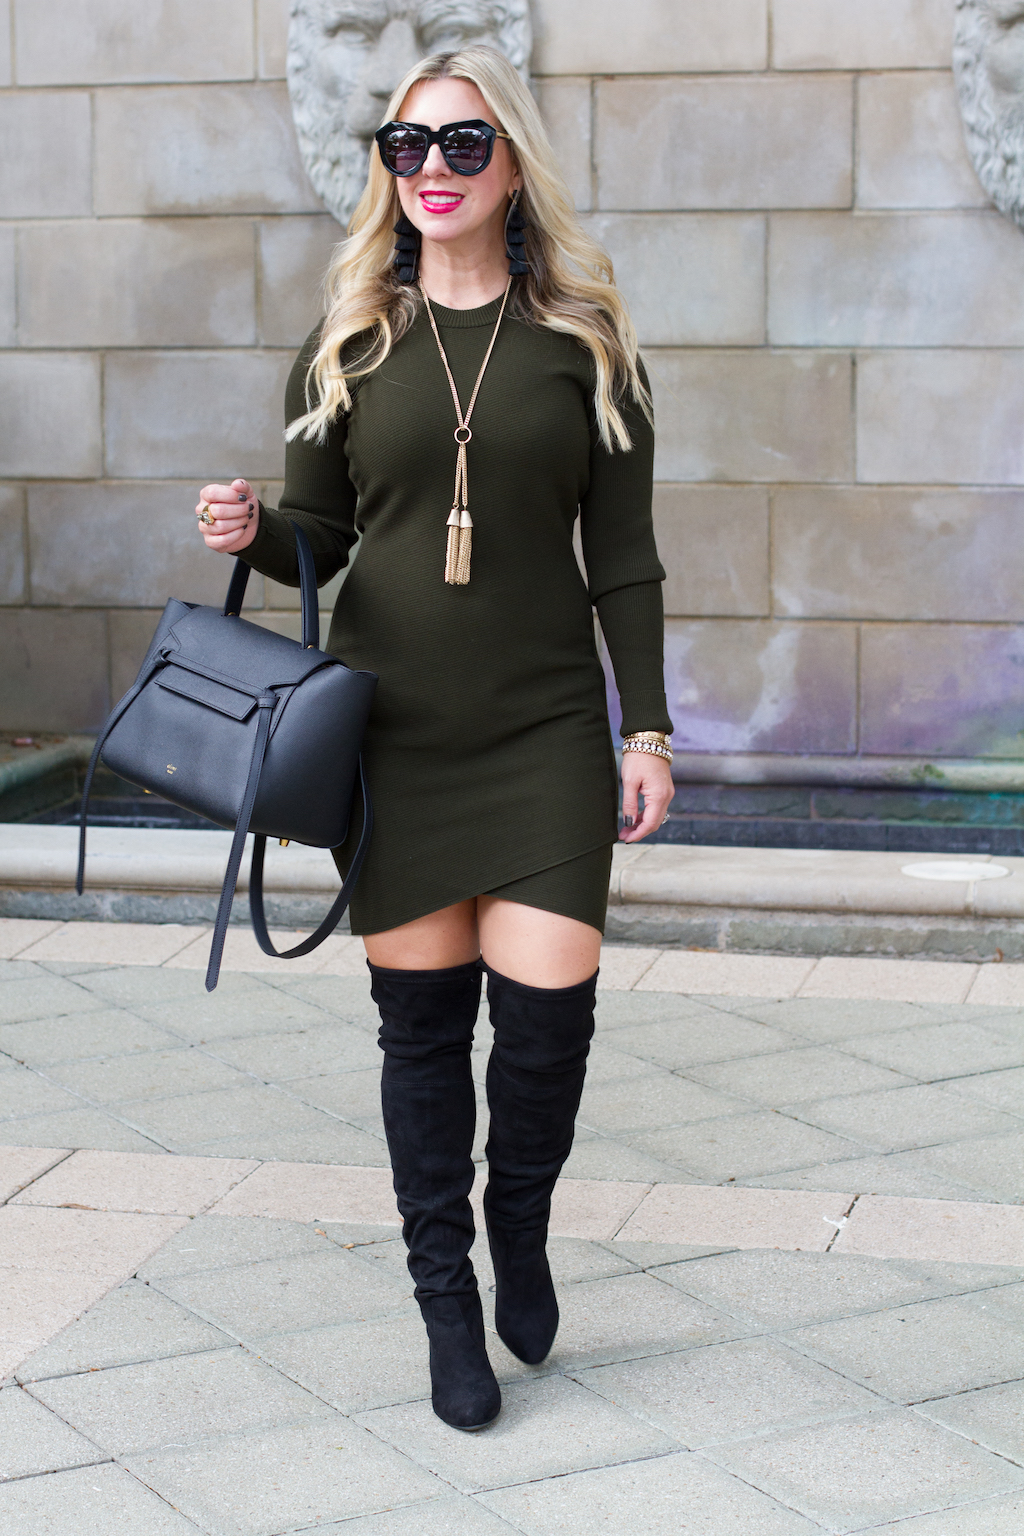 Sweater Dress | The Darling Petite Diva